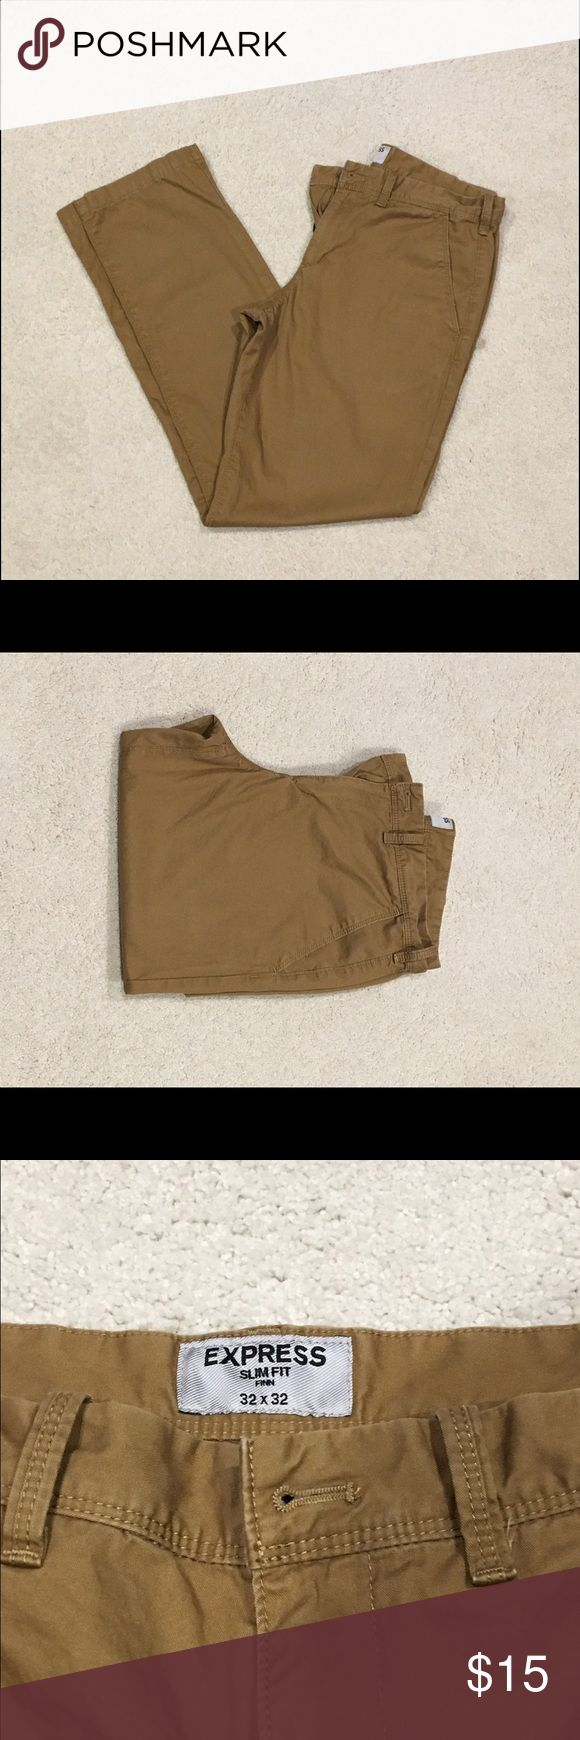 Men's Express Slim Fit Chinos-Tan, 32x32 For sale is a pair of slightly worn men's slim fit chinos from Express, size 32x32.  These were worn a handful of times and are in great condition. Express Pants Chinos & Khakis